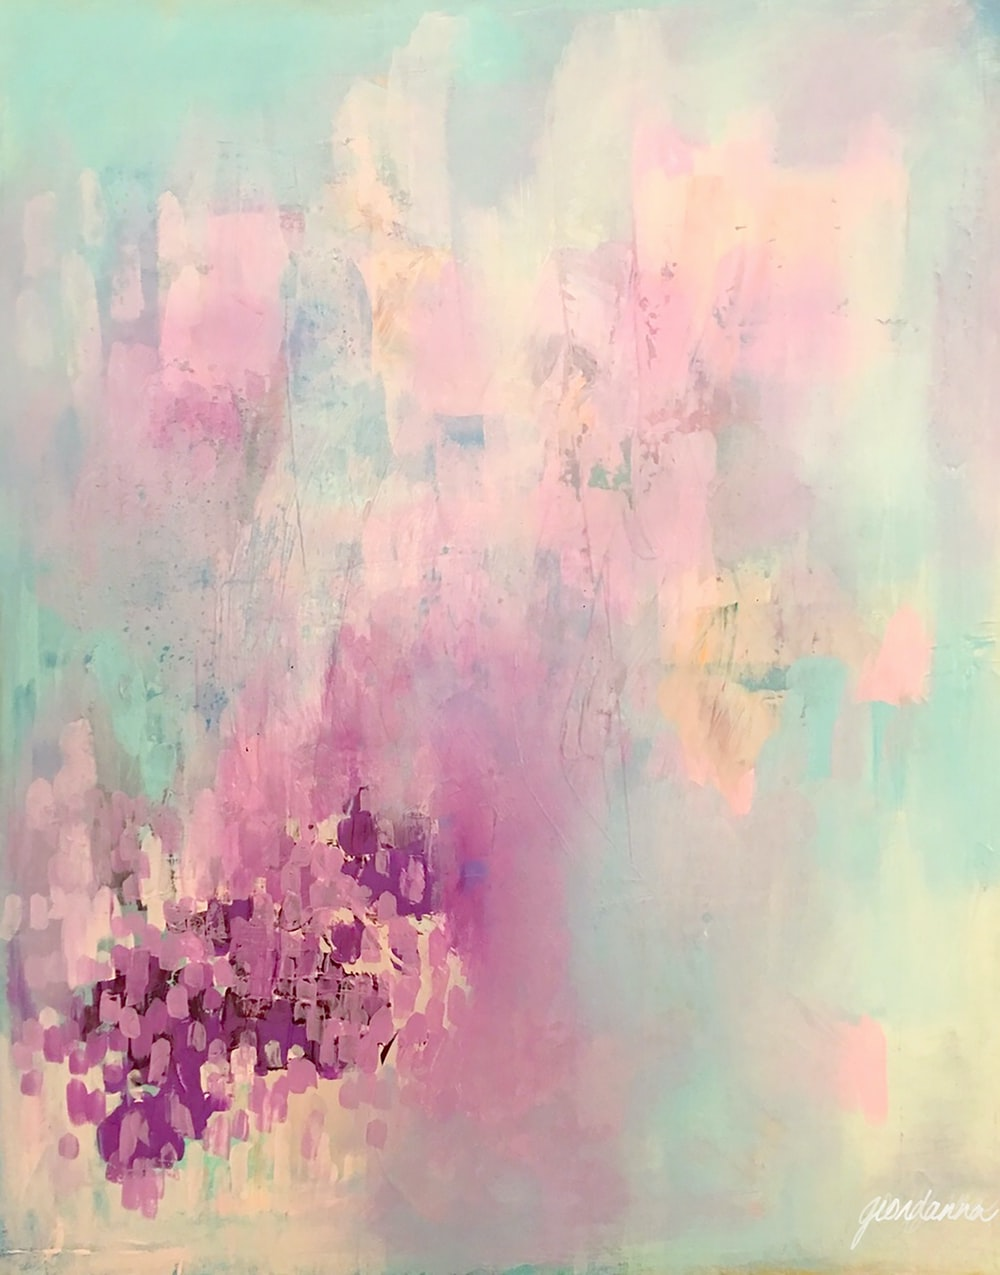 900 Watercolor Background Images Download HD Backgrounds on Unsplash 1000x1275